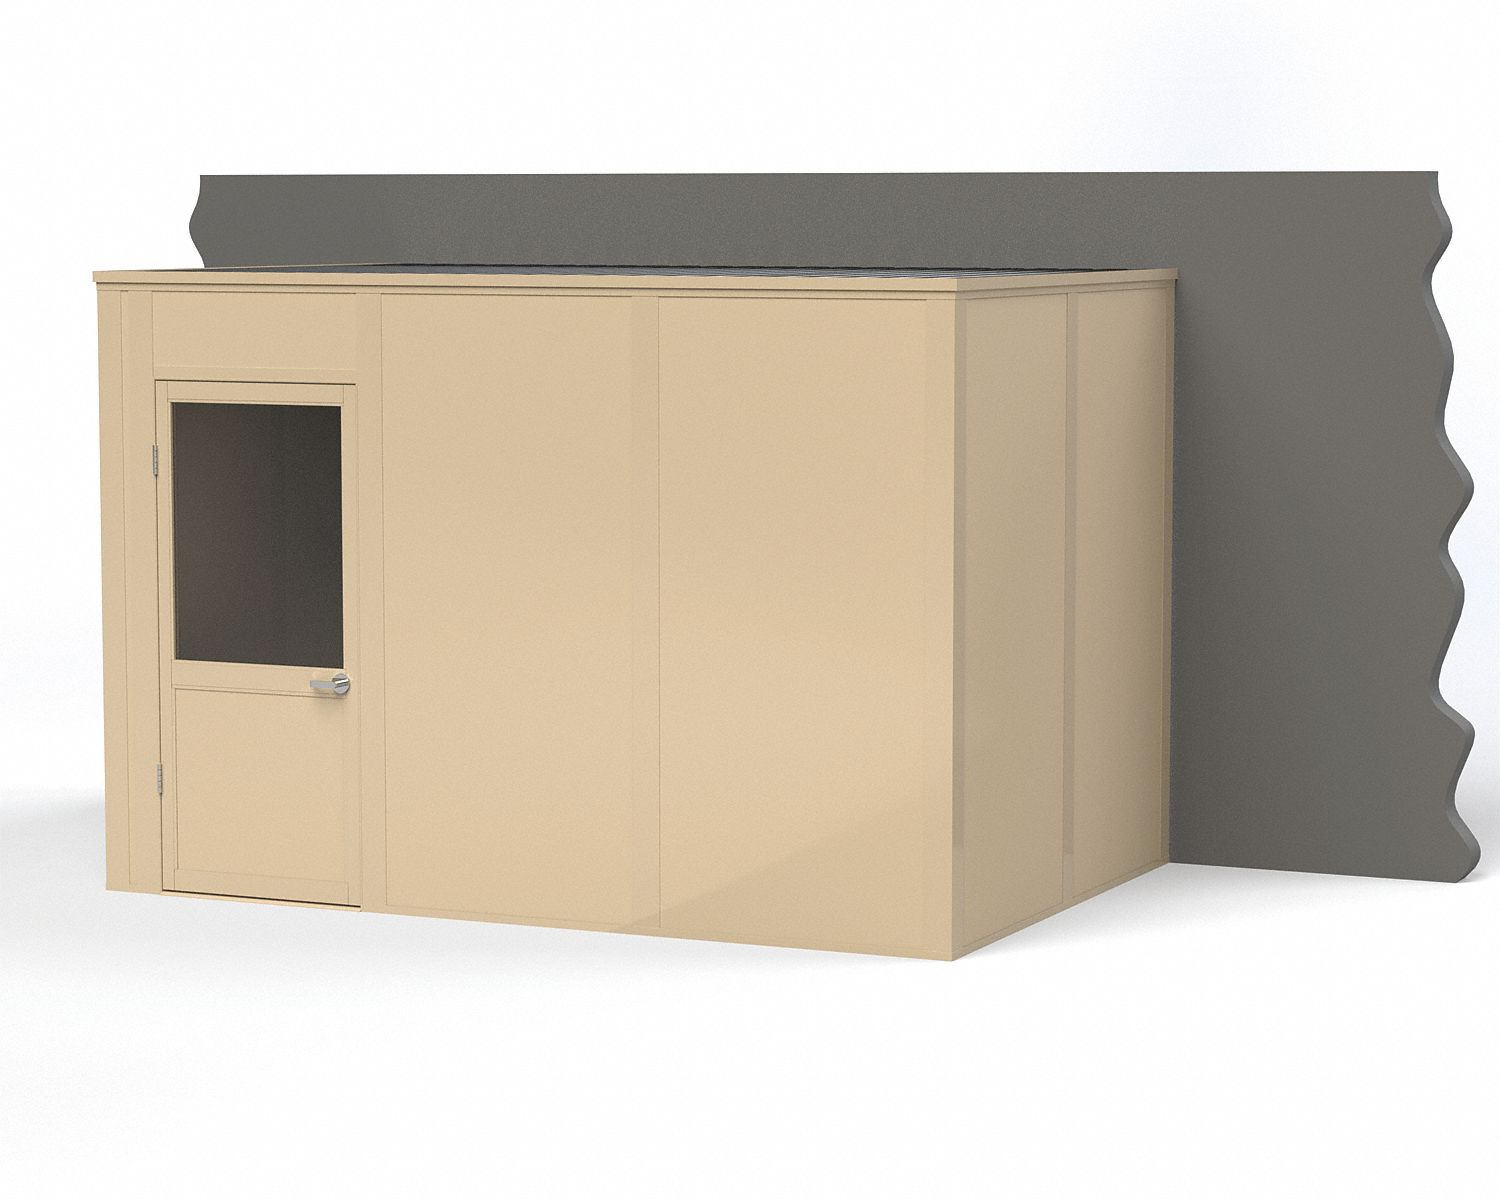 Modular In-Plant Office,  3-Wall,  12 ft. Width,  8 ft. Depth,  8 ft. Height